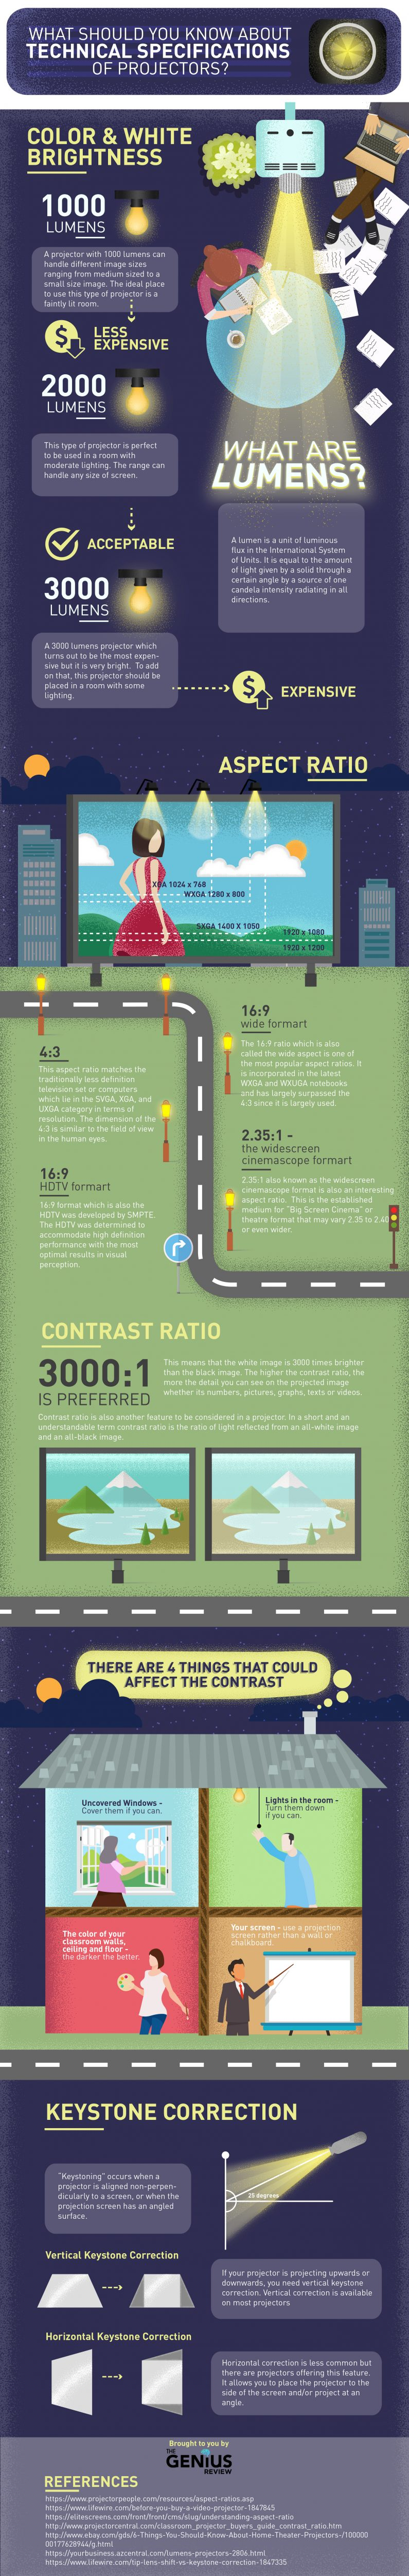 [infographic] Technical Specifications of Projectors